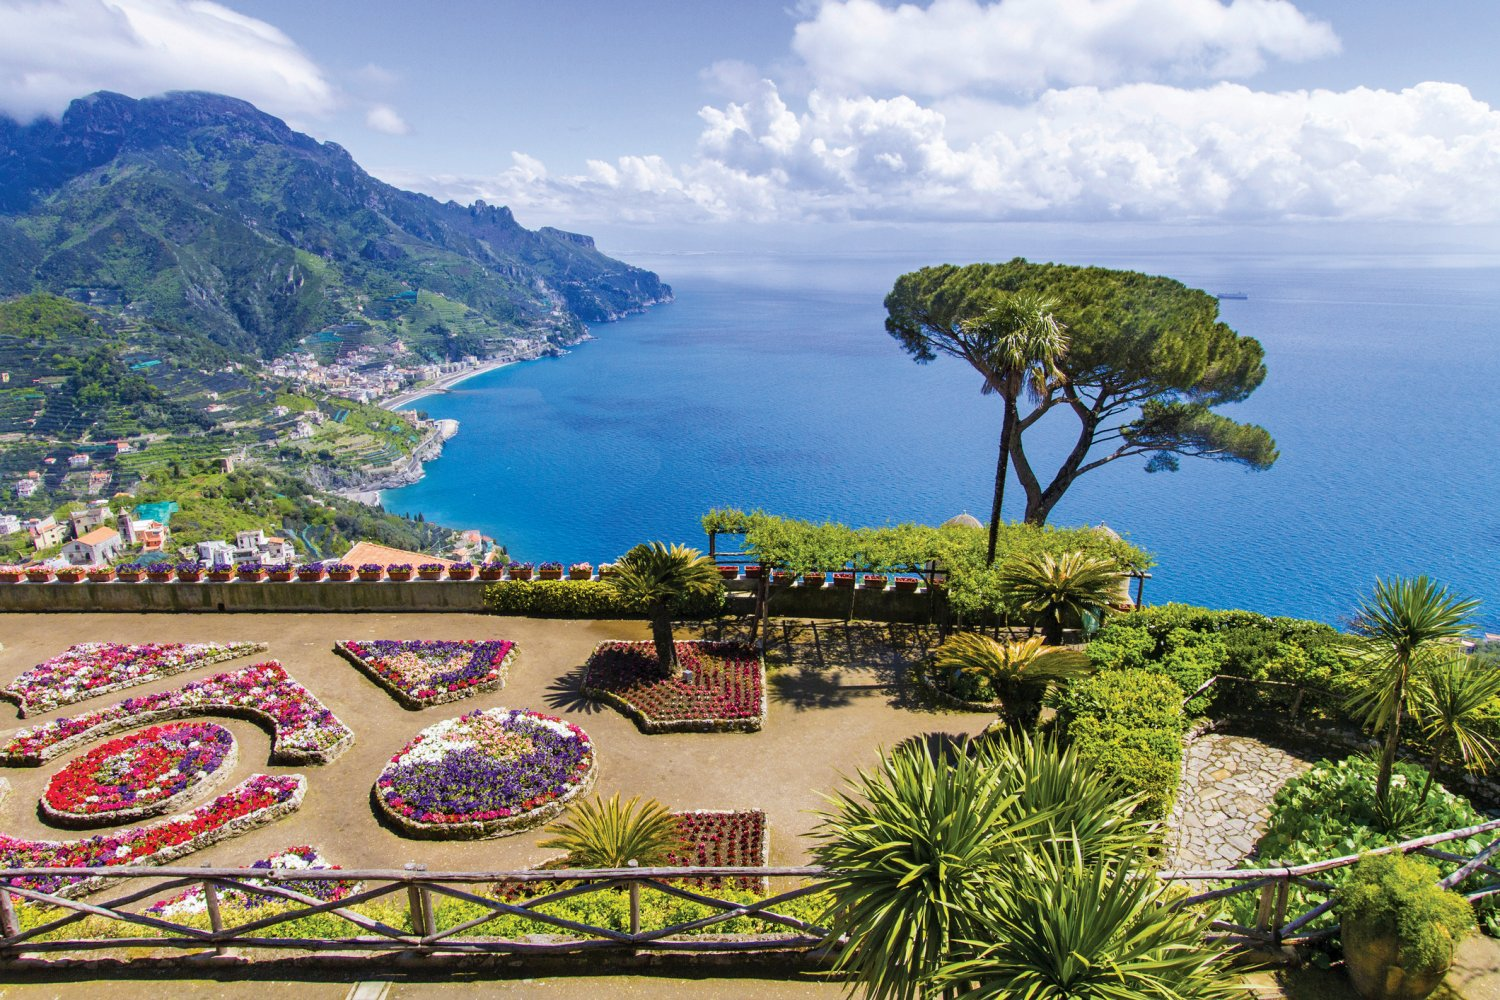 Itview of amalfi coast from clifftop Ravello